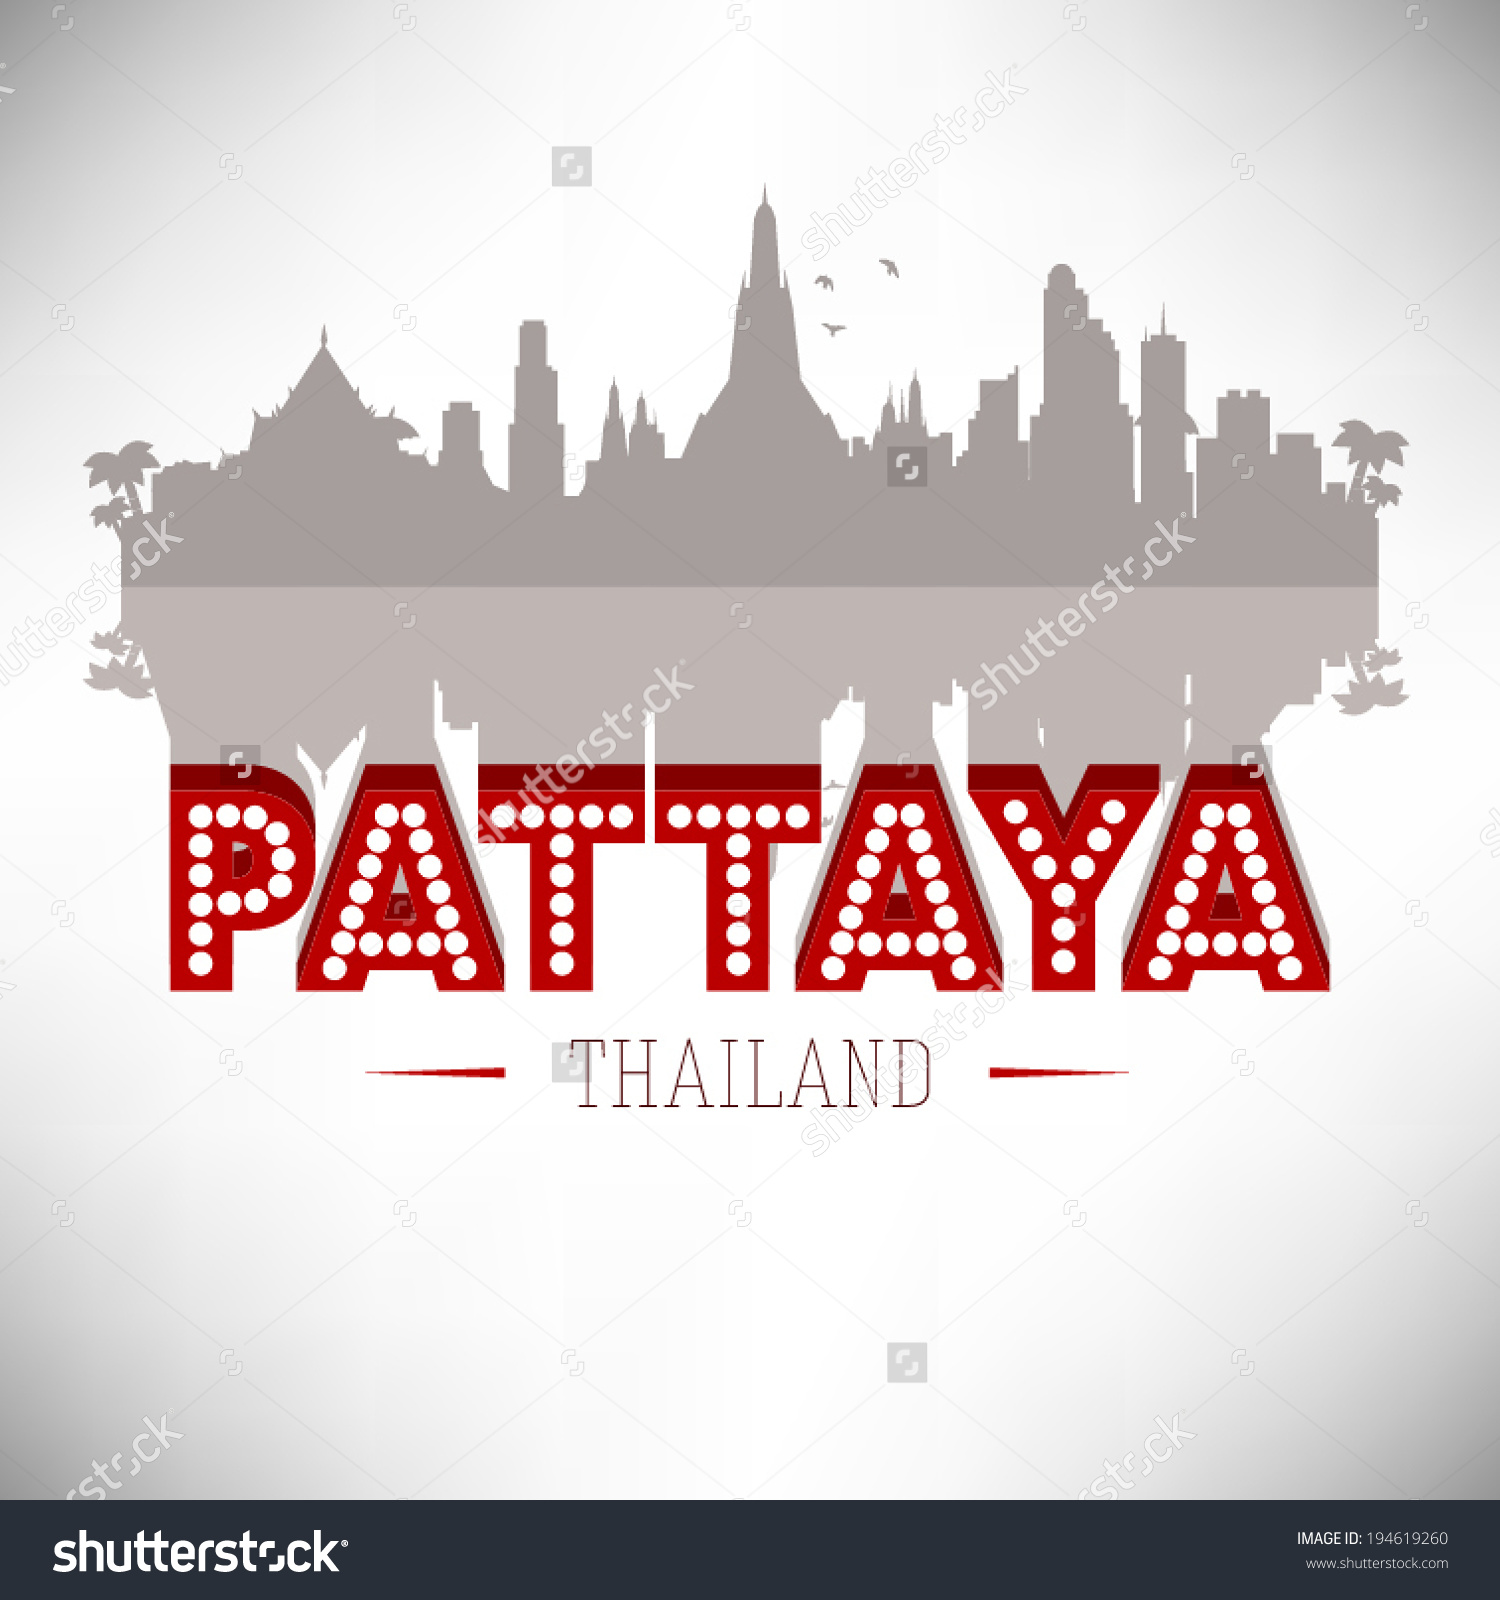 Pattaya Thailand Skyline Silhouette Vector Design Stock Vector.